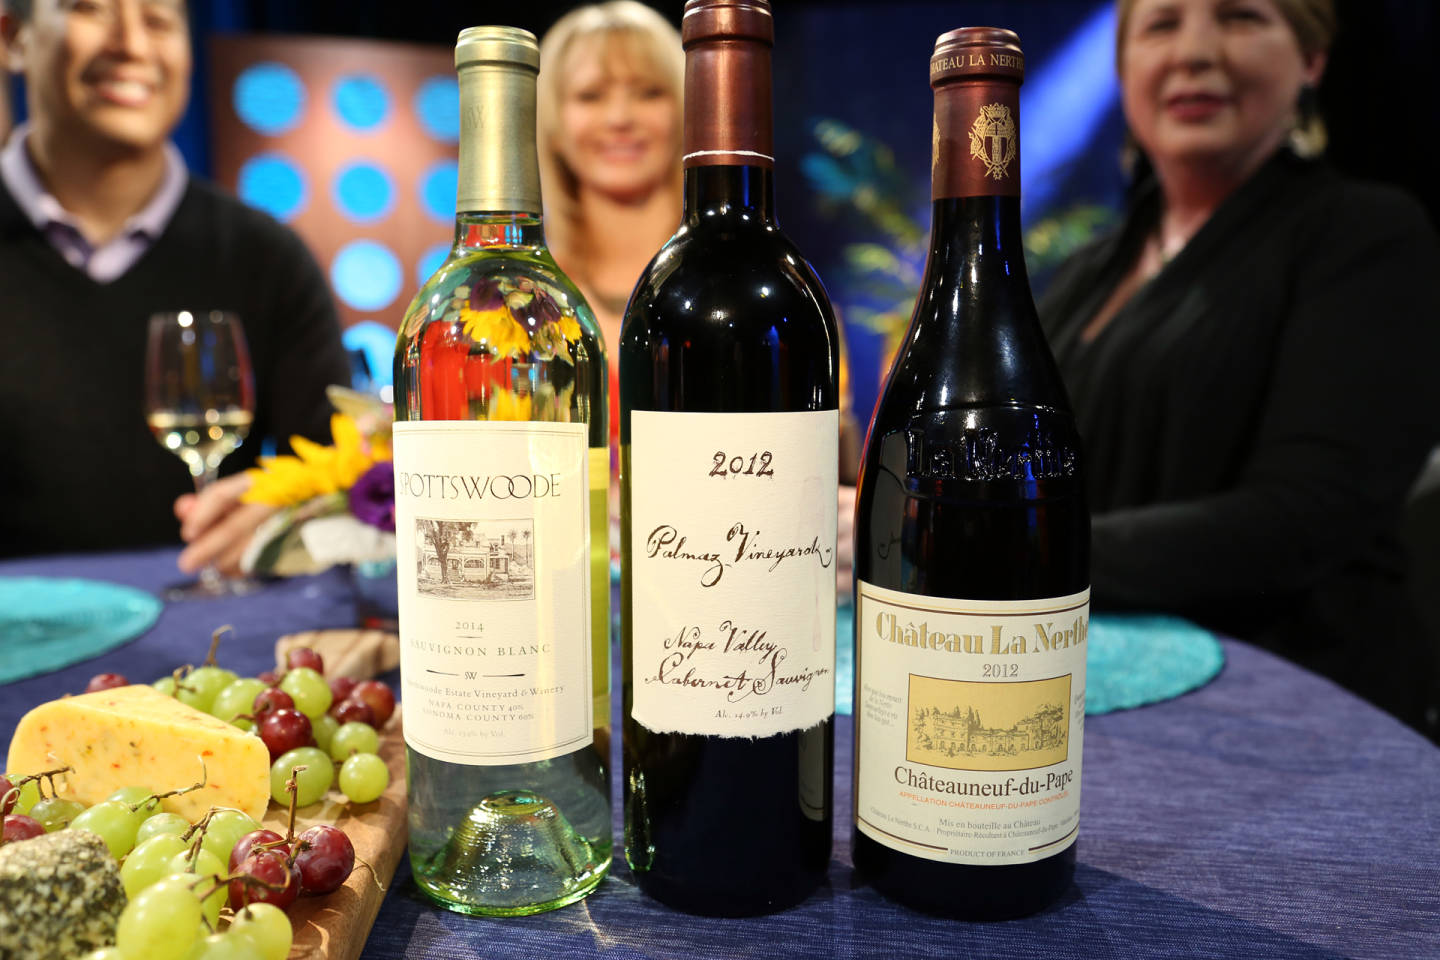 Wines that guests drank on the set of the premiere episode of Check, Please! Bay Area season 11 included a Spottswoode Sauvignon Blanc.